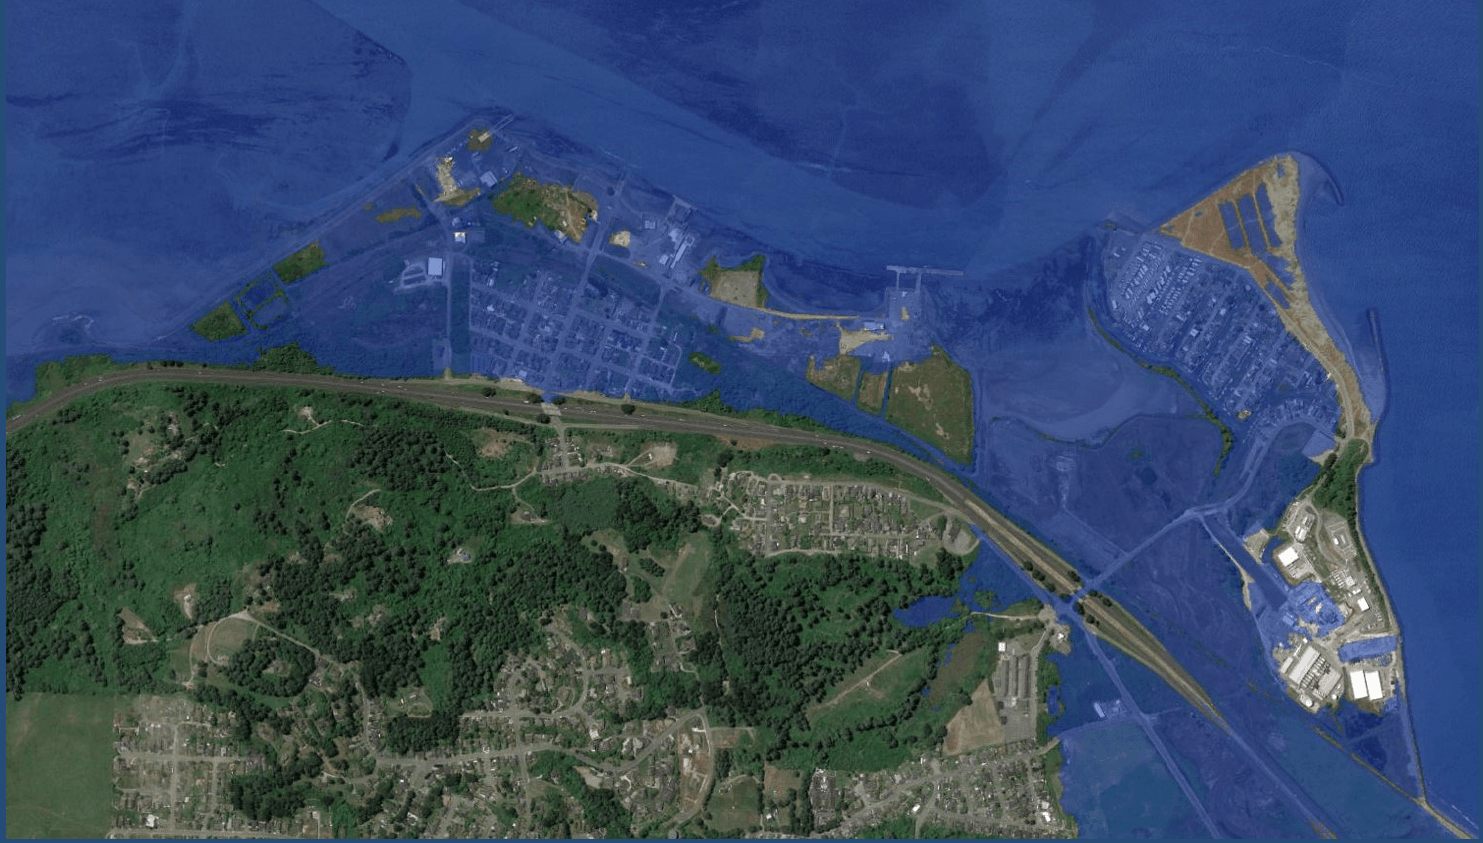 Map showing King Salmon inundated by 3 feet of water